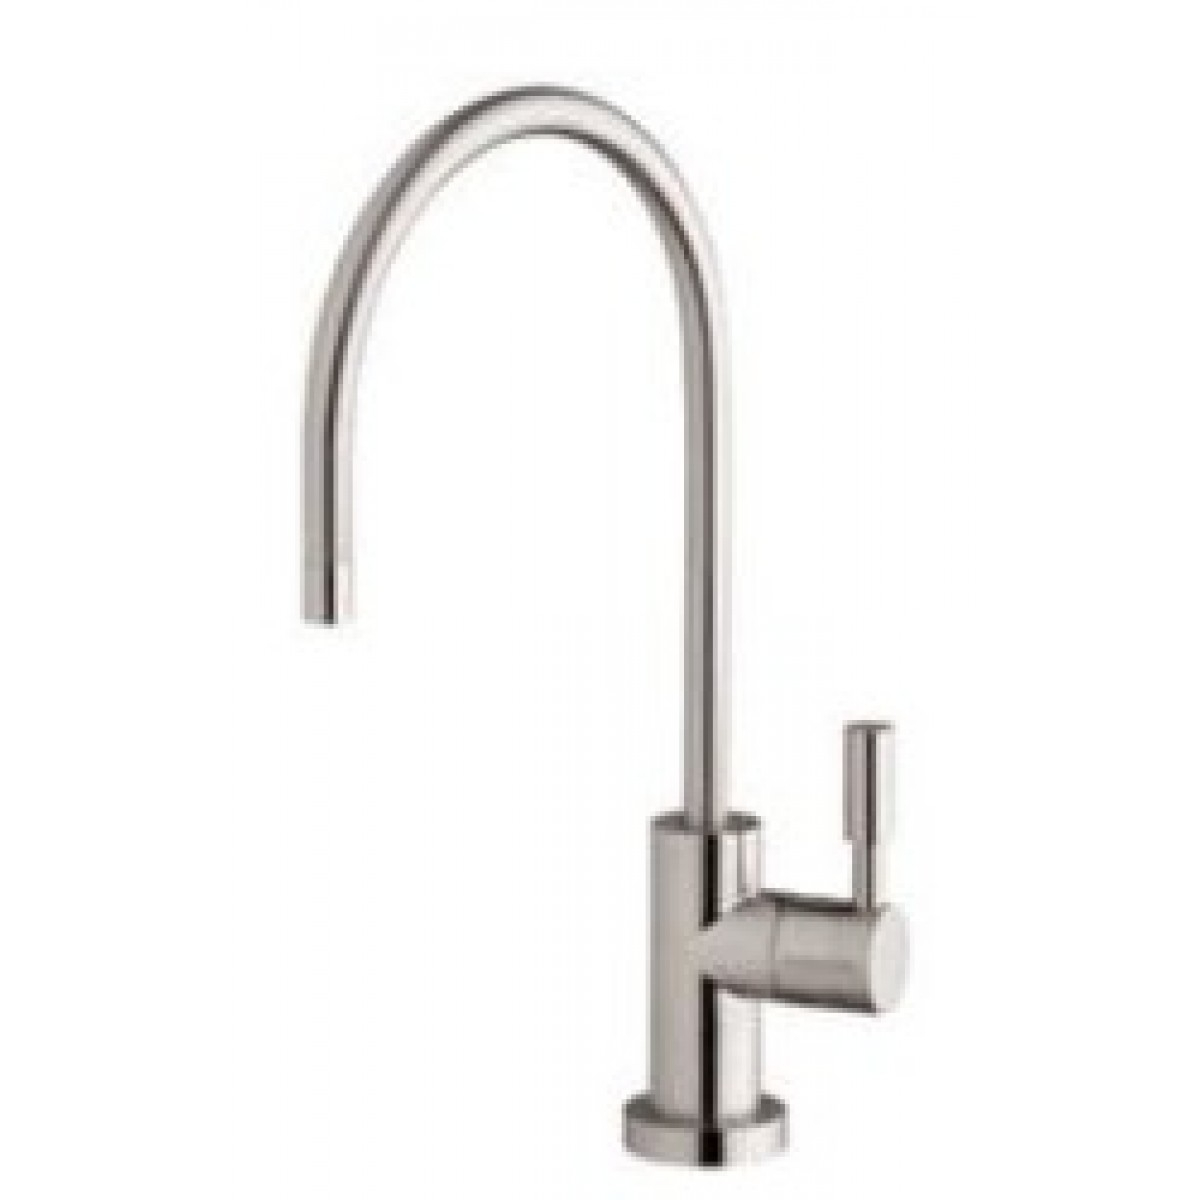 Ideas, brushed stainless filtered water faucet brushed stainless filtered water faucet replacement faucets for point of use water waterfilters 1200 x 1200  .